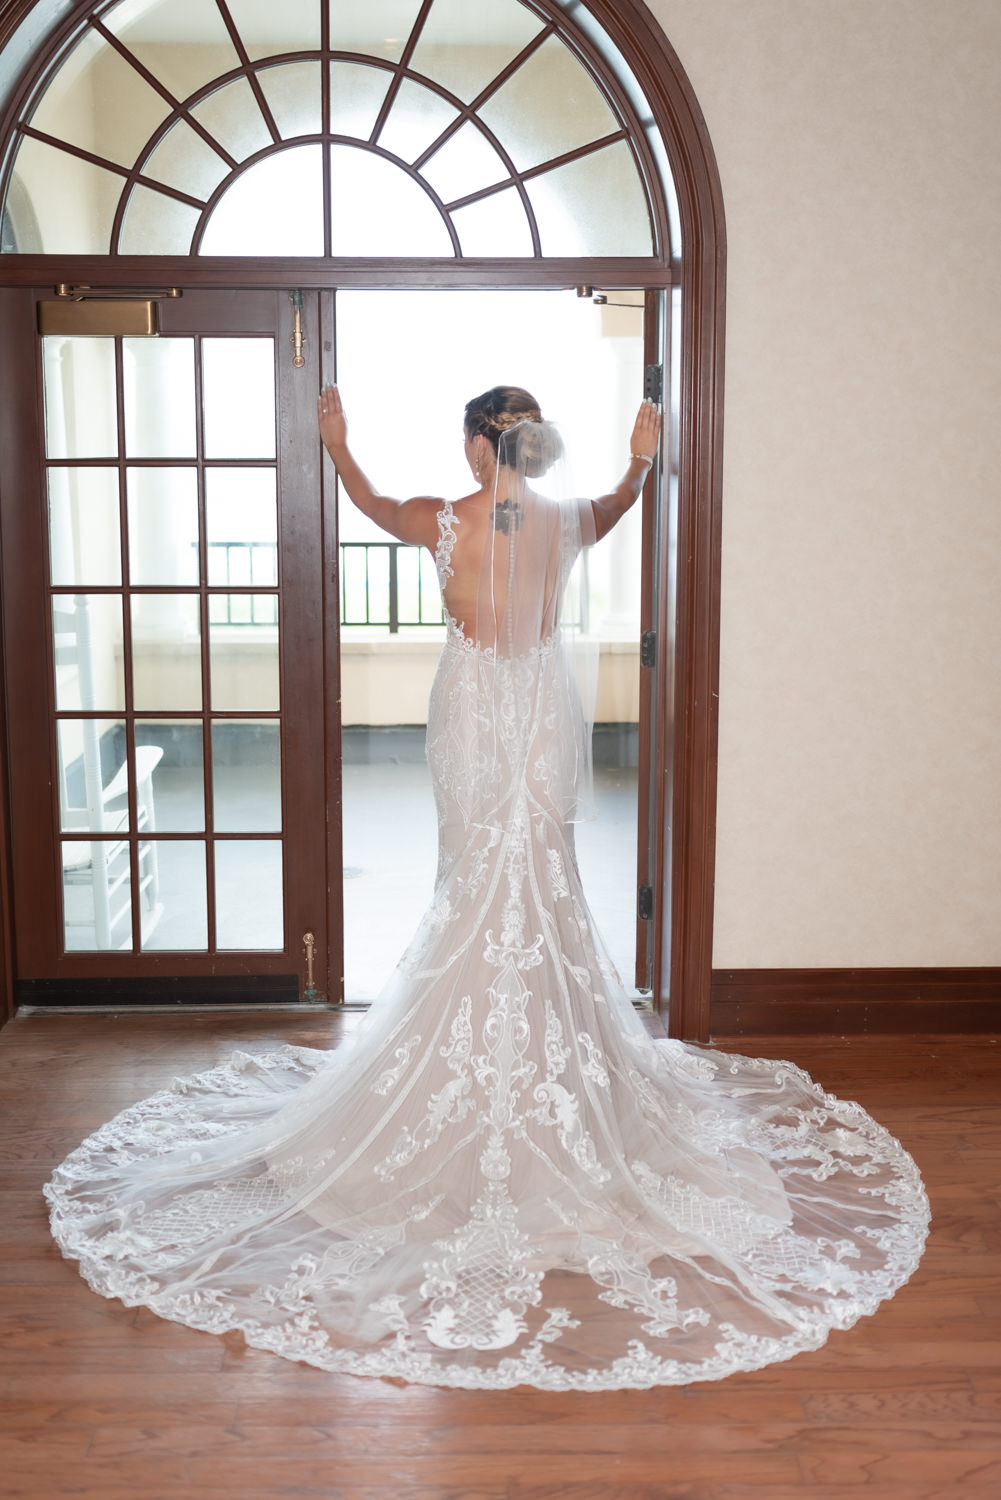 Bride standing in doorway - Grande Dunes Ocean Club - Myrtle Beach